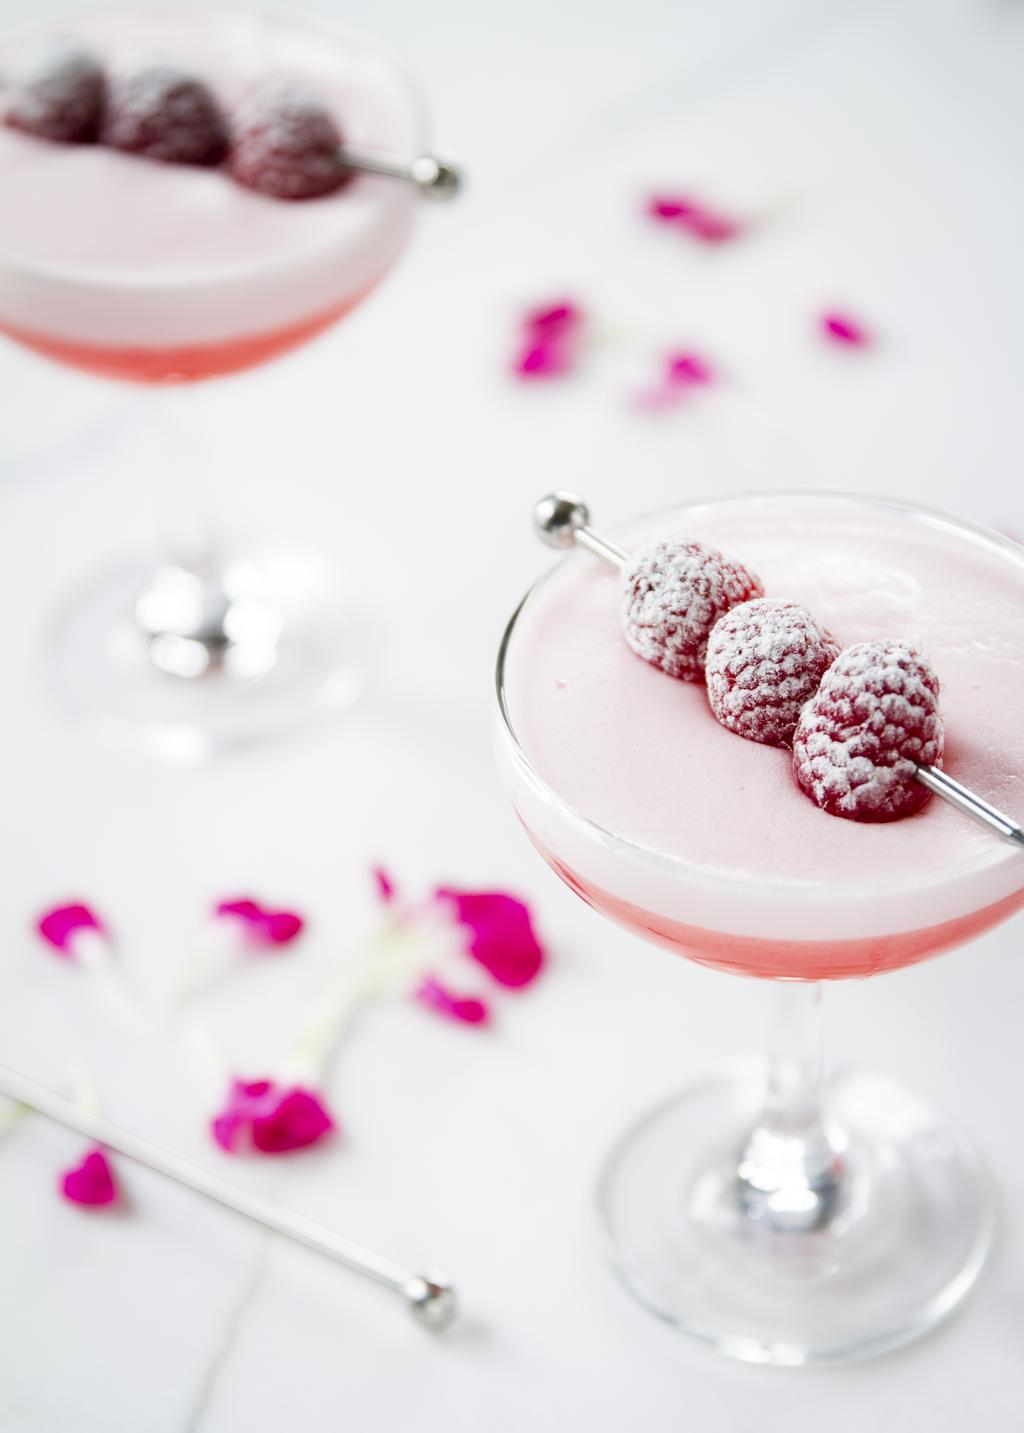 Clover Club à la Monsieur Cocktail